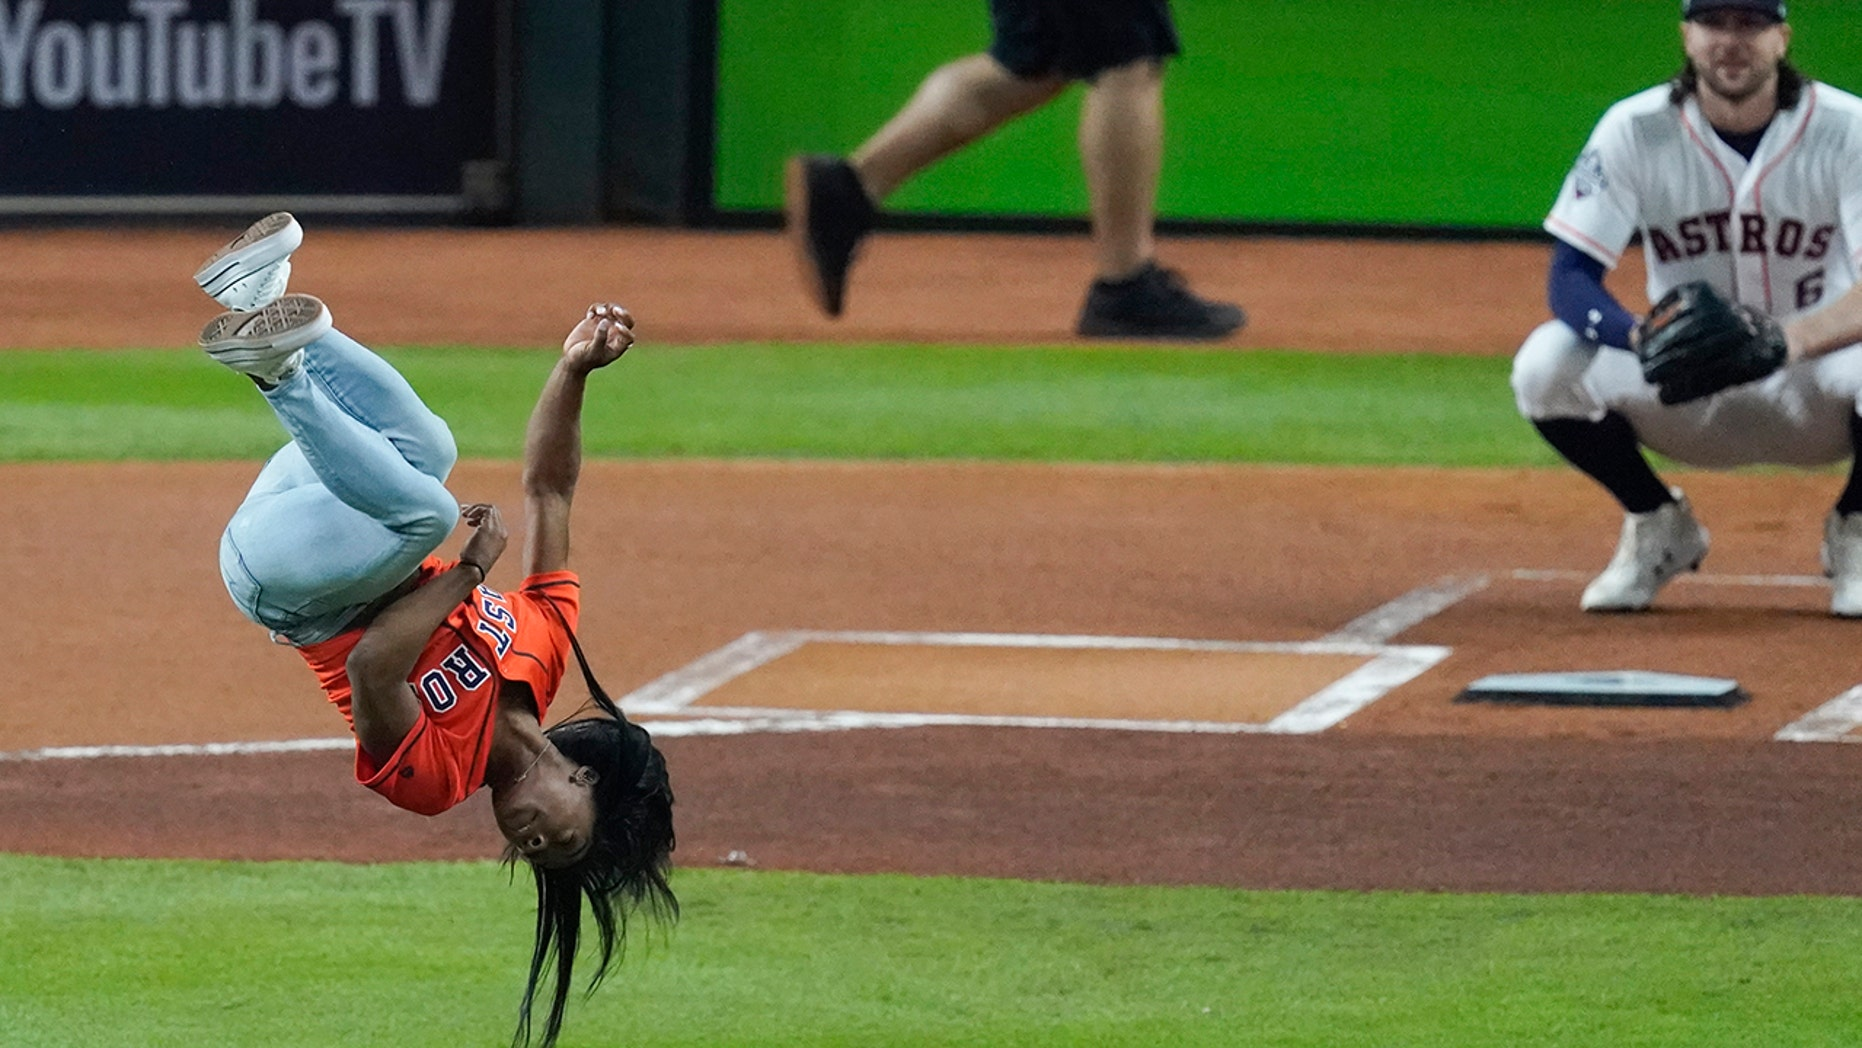 Simone Biles back flip twists before first pitch of the World Series